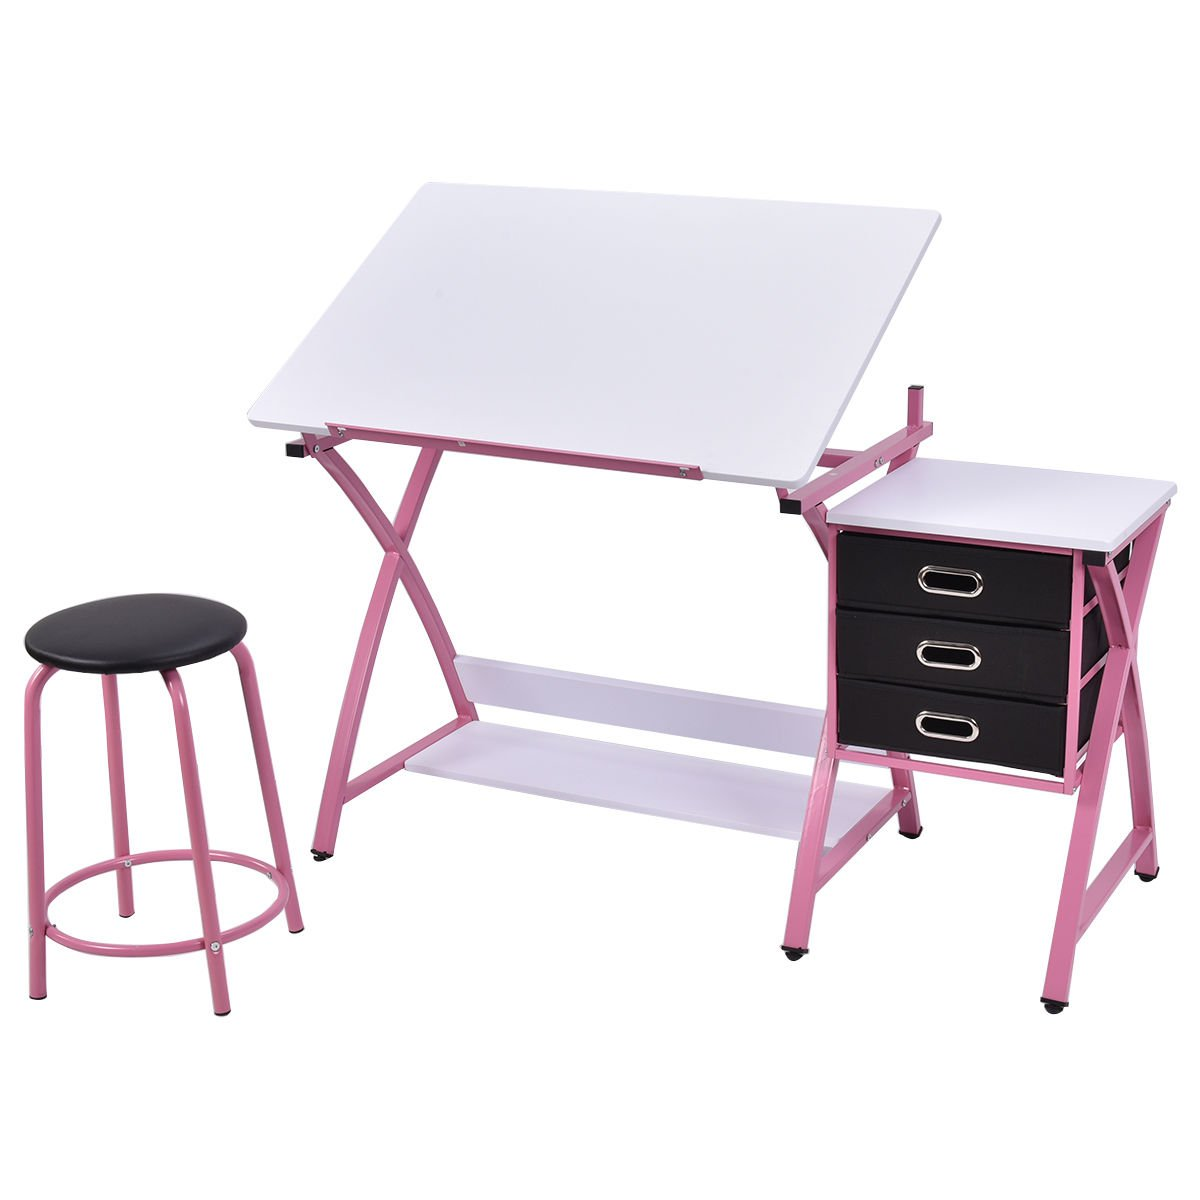 NEW expanding tray table Drafting Table Art & Craft Drawing Desk Art Hobby Folding Adjustable w- Stool-Pink